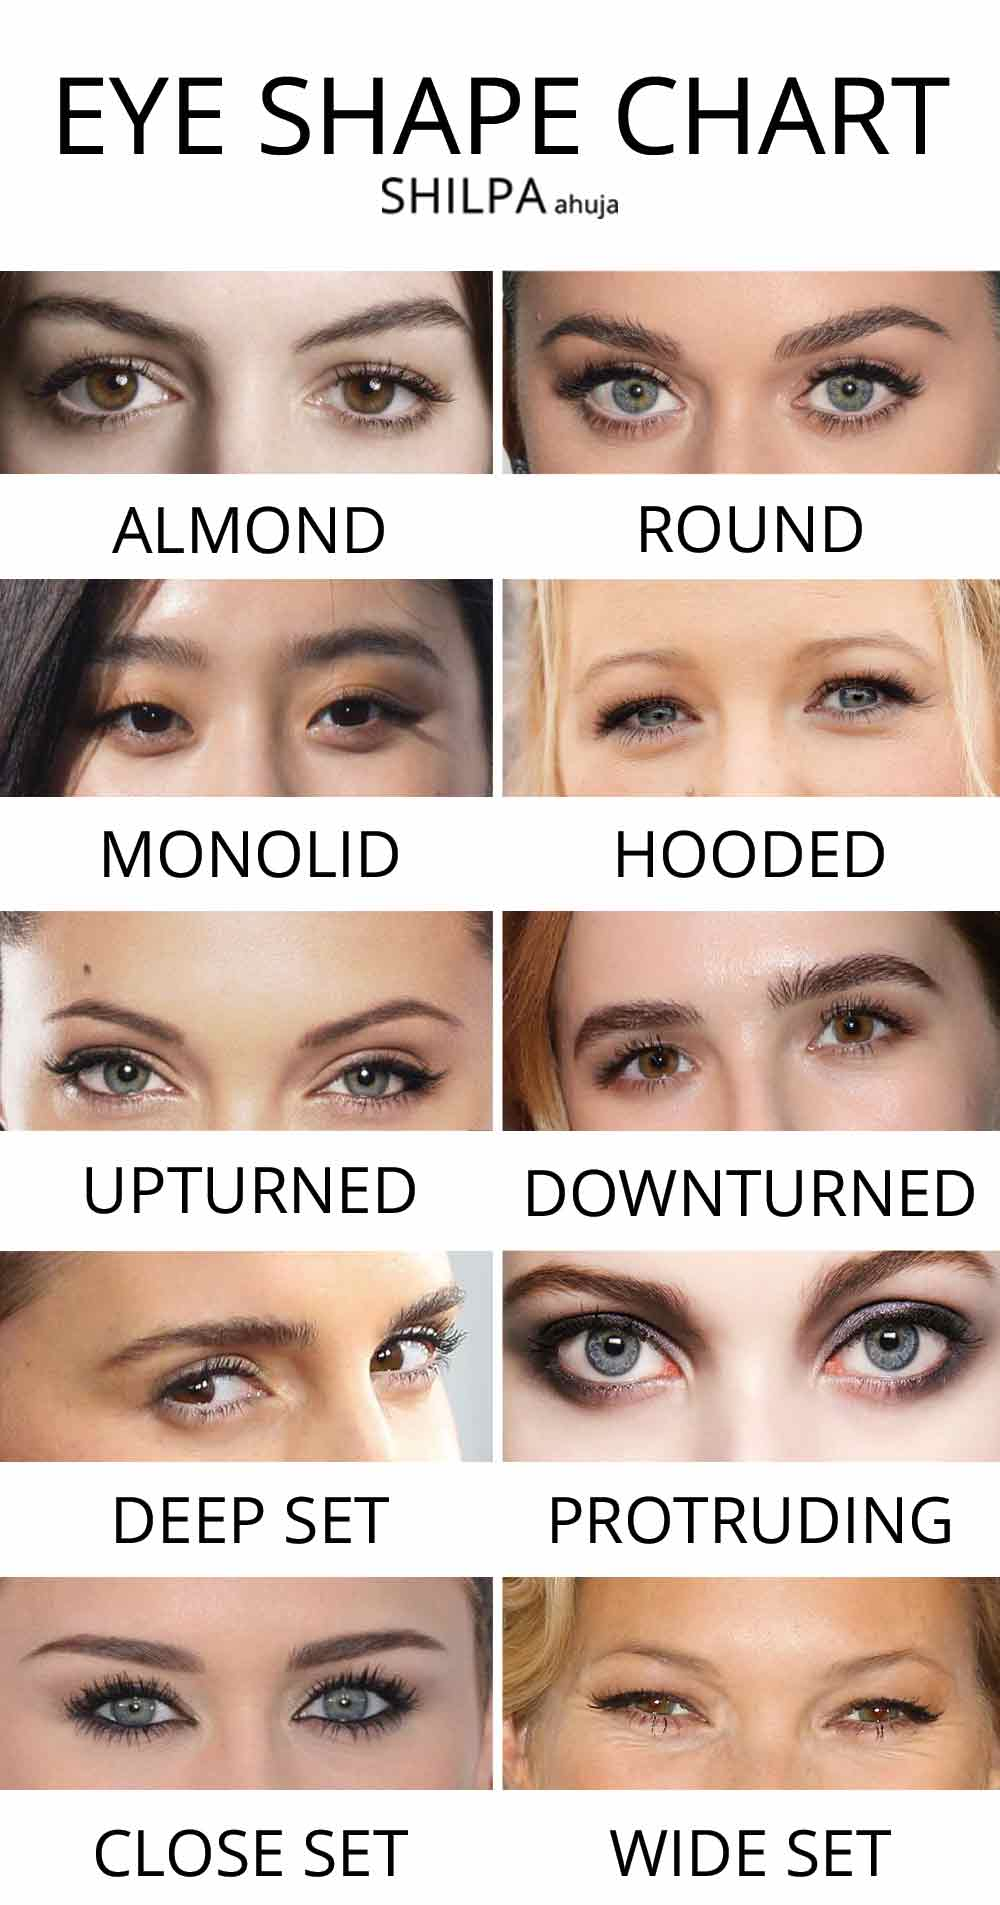 hight resolution of eye shape chart different types guide downturned hooded